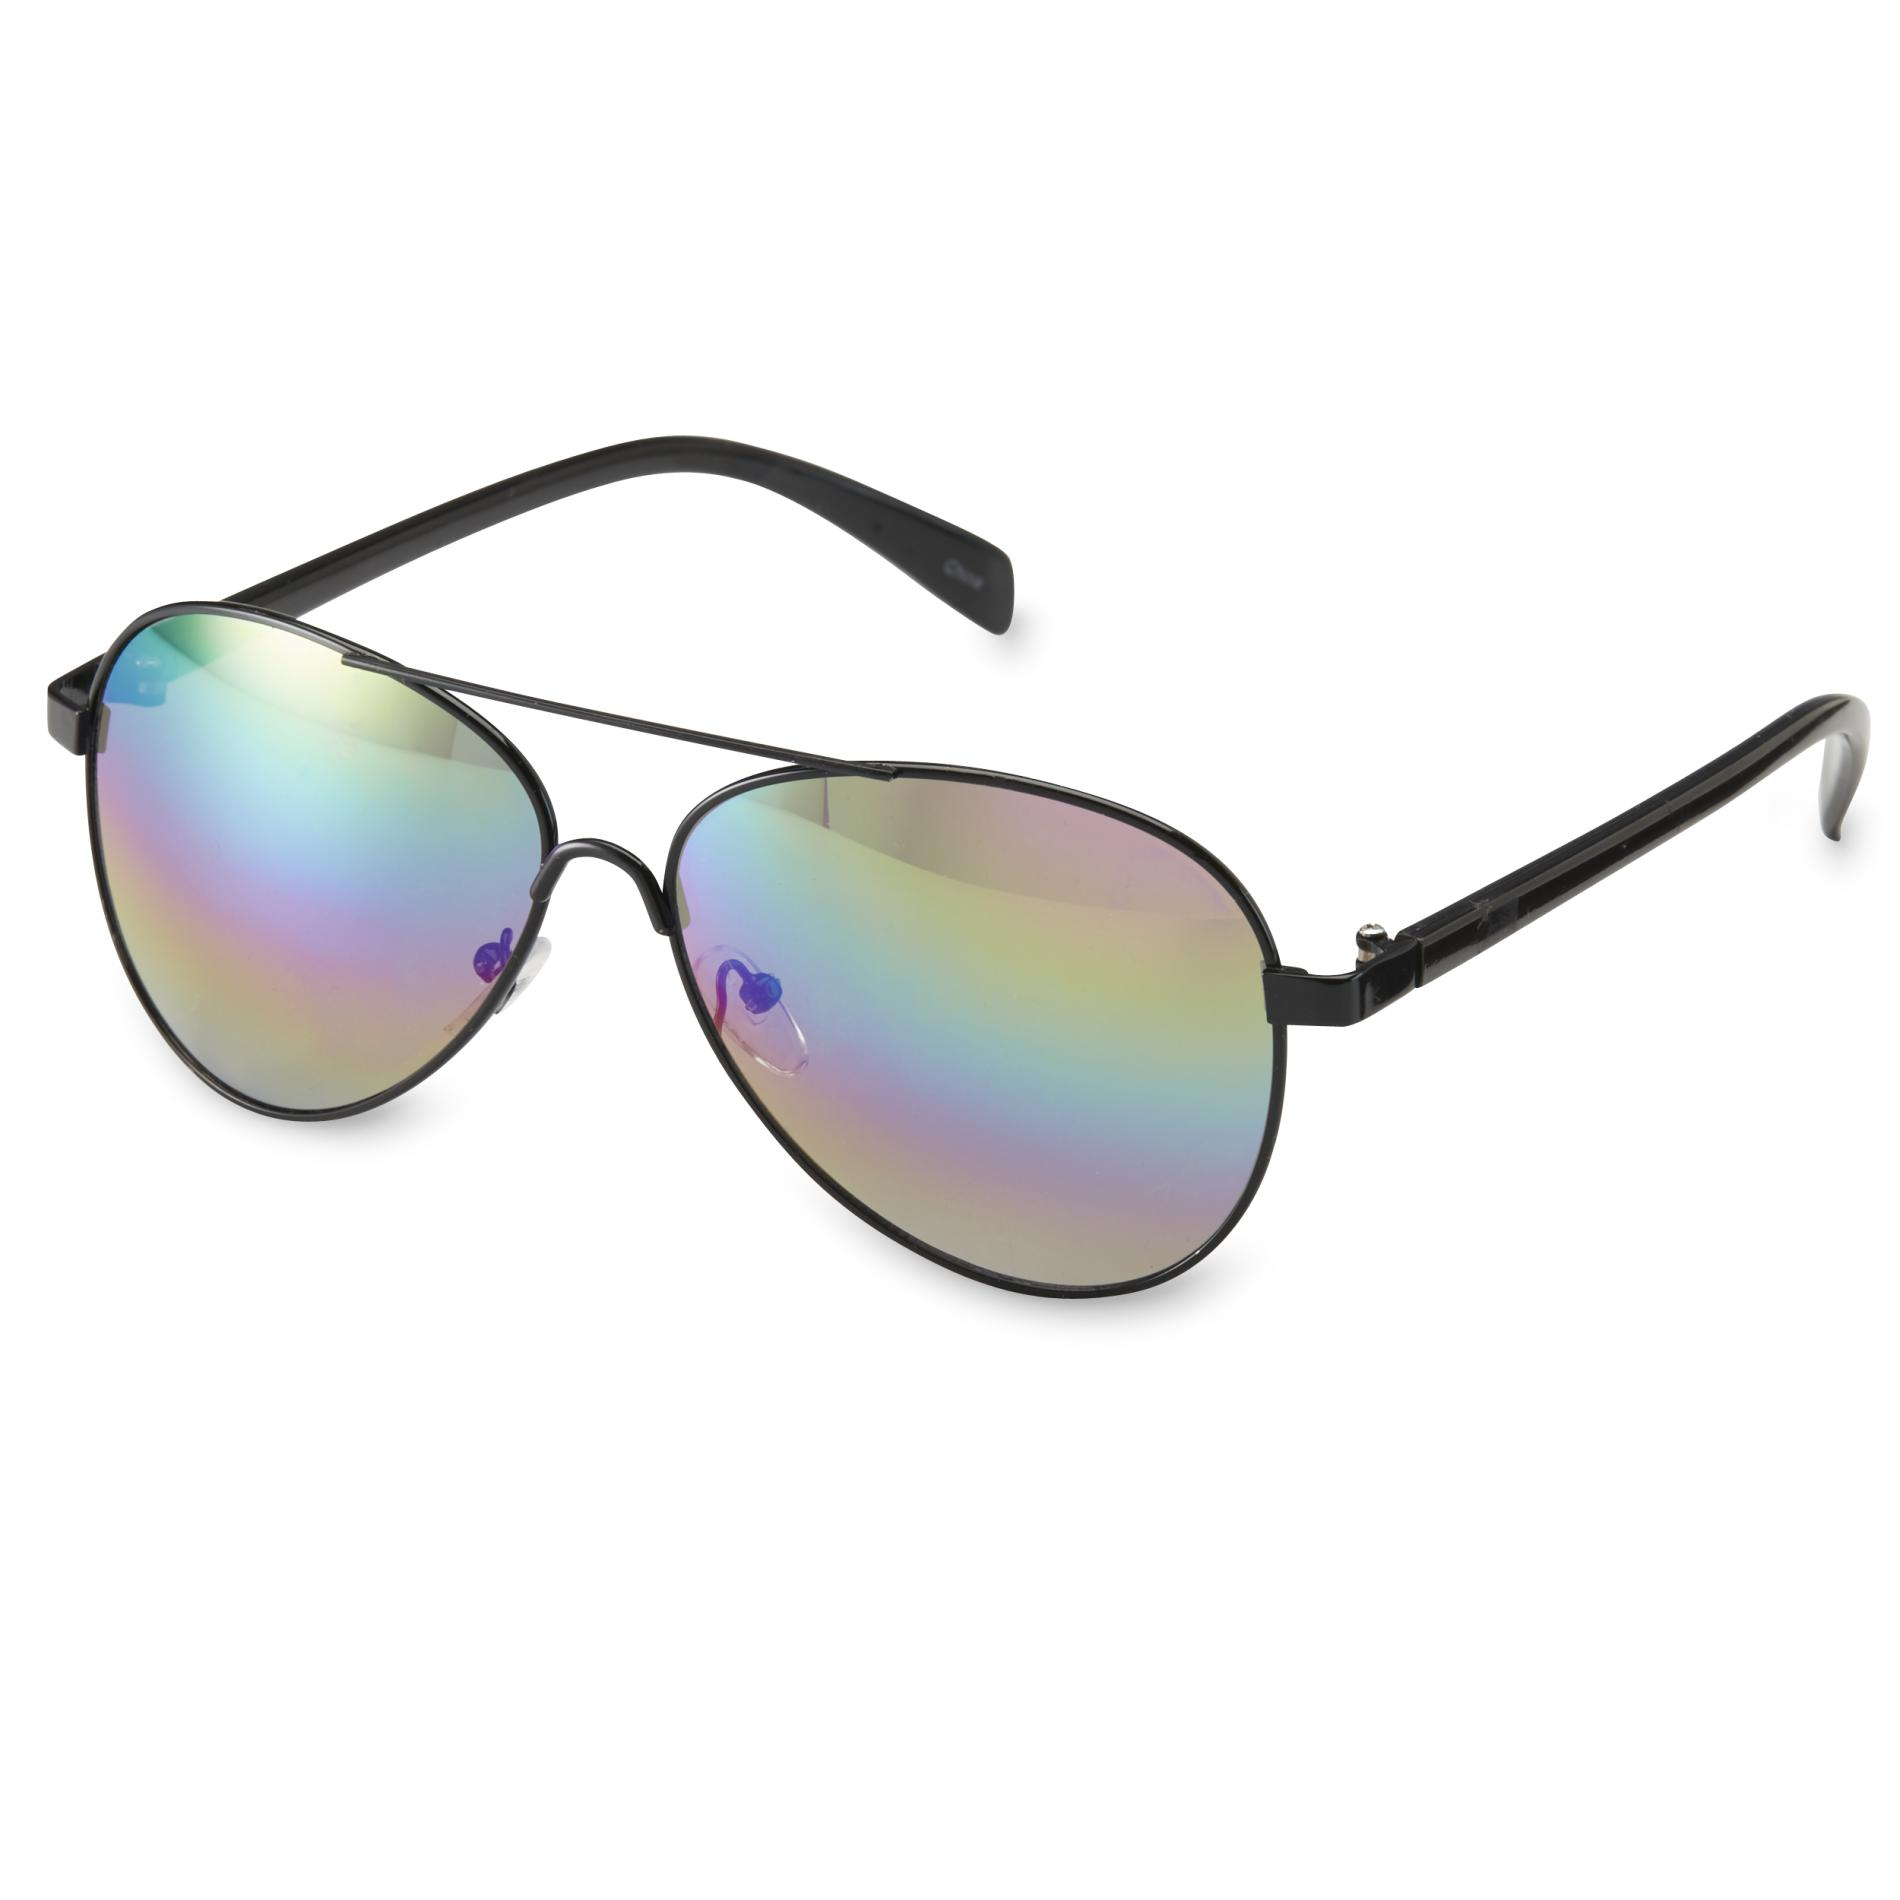 Joe Boxer Protect your eyes while you project slick style with these black aviator sunglasses